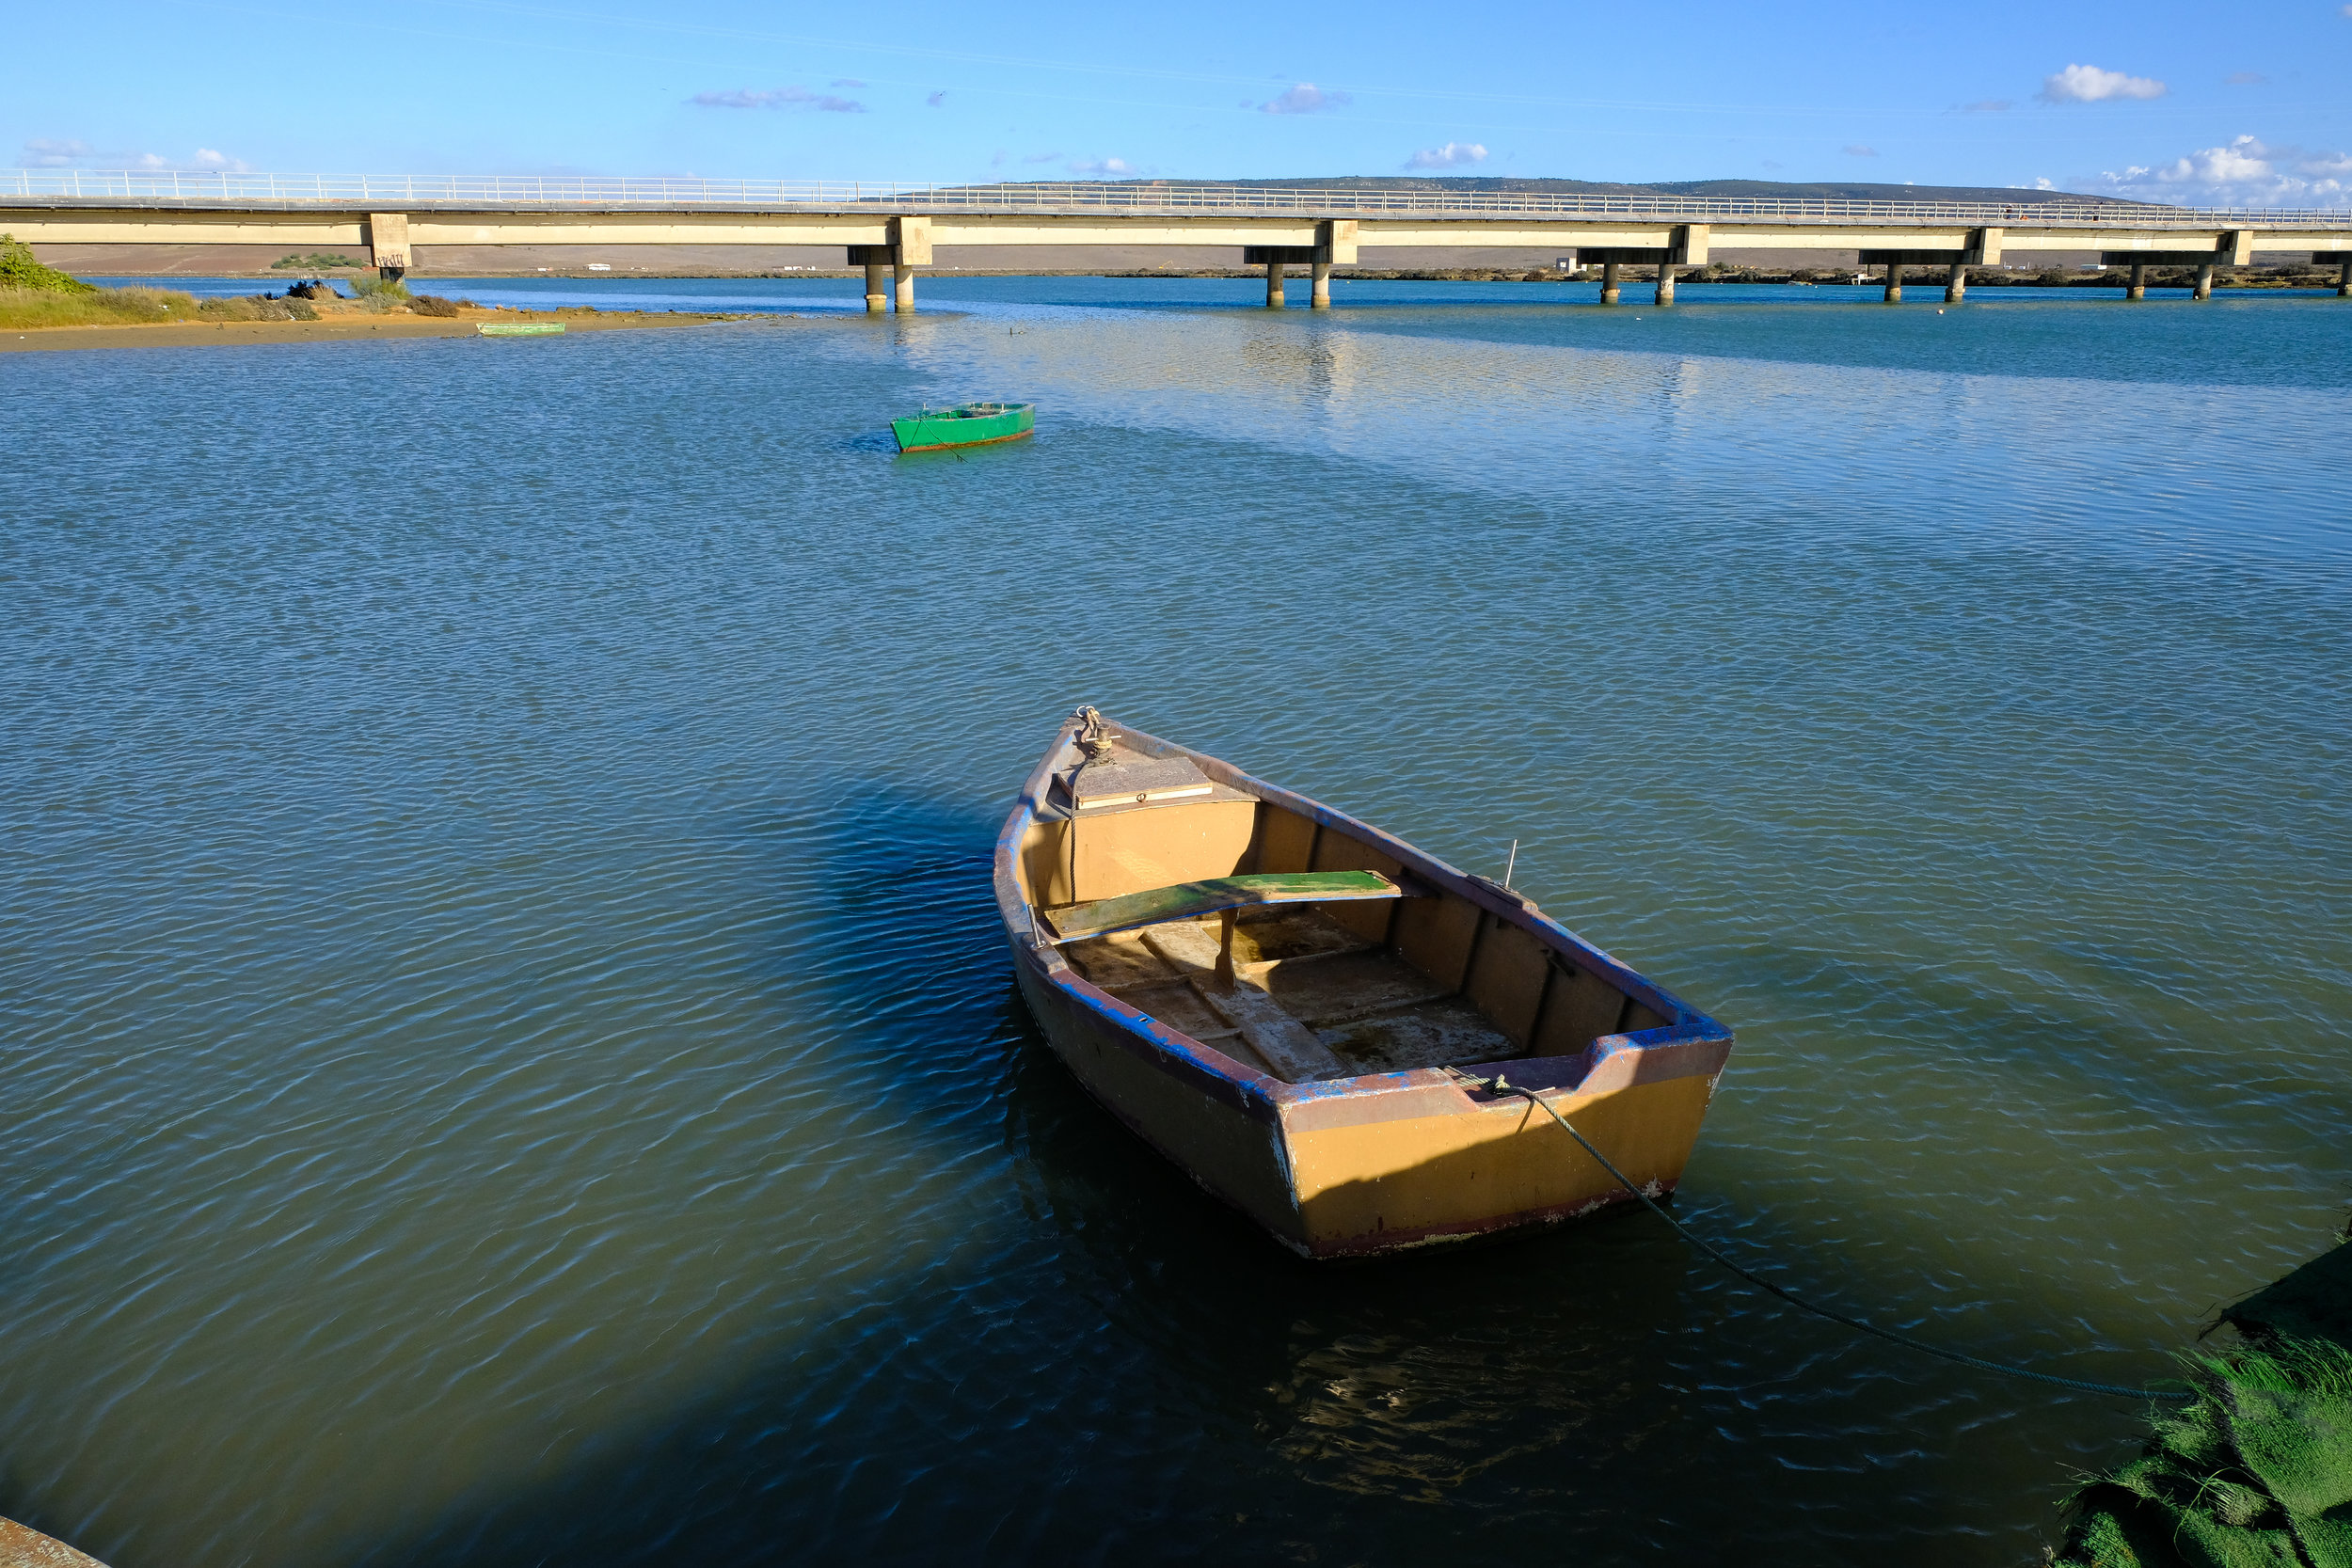 Boats in the river at Barbate, Andalucia.